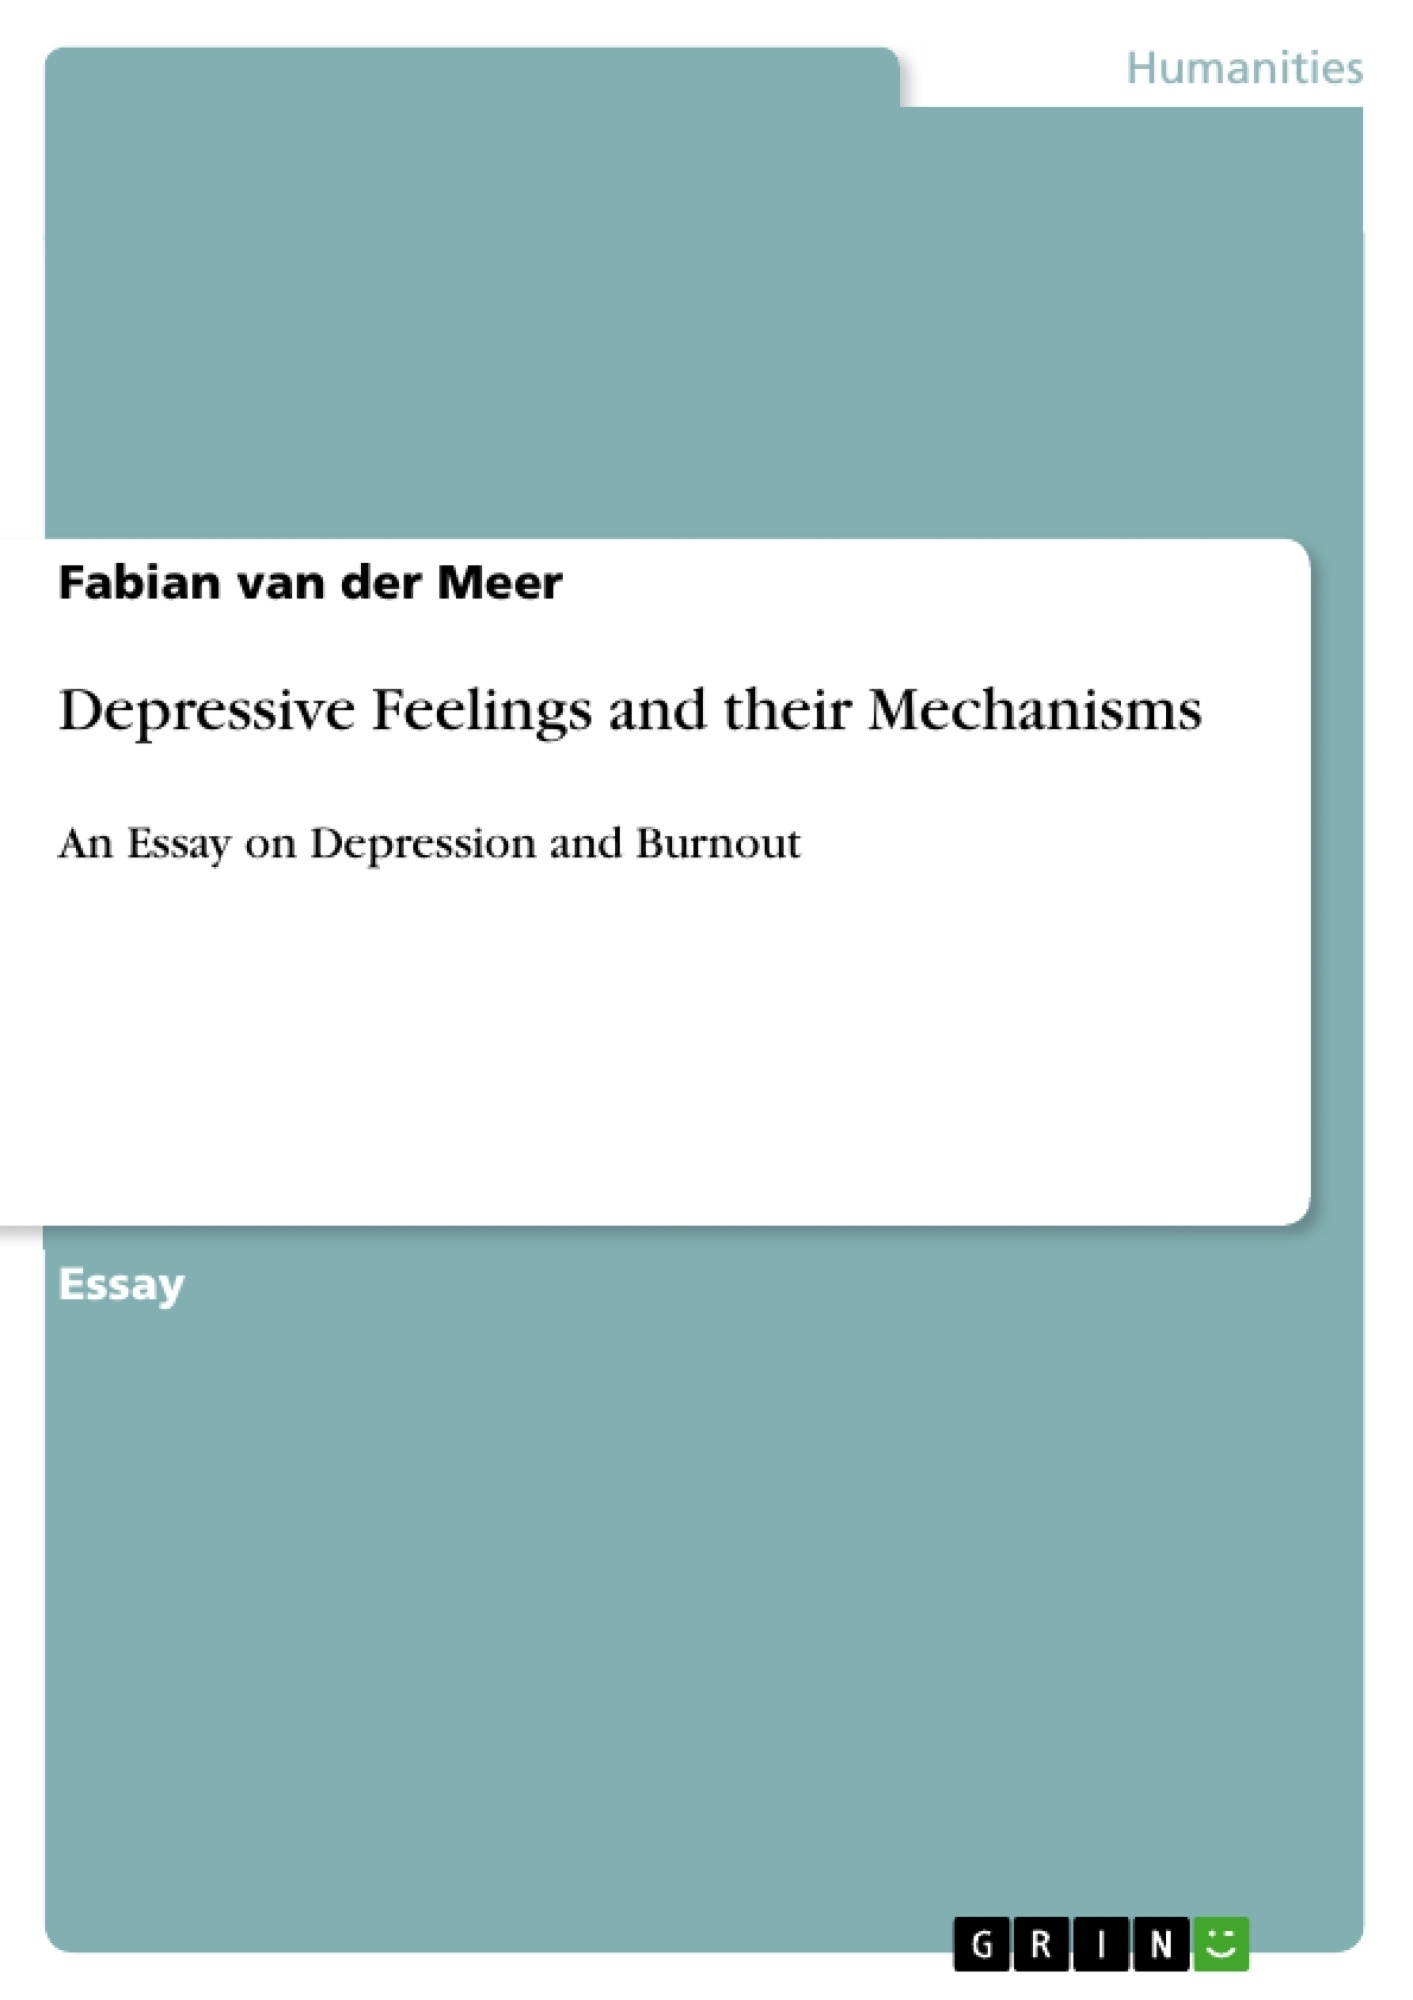 Title: Depressive Feelings and their Mechanisms